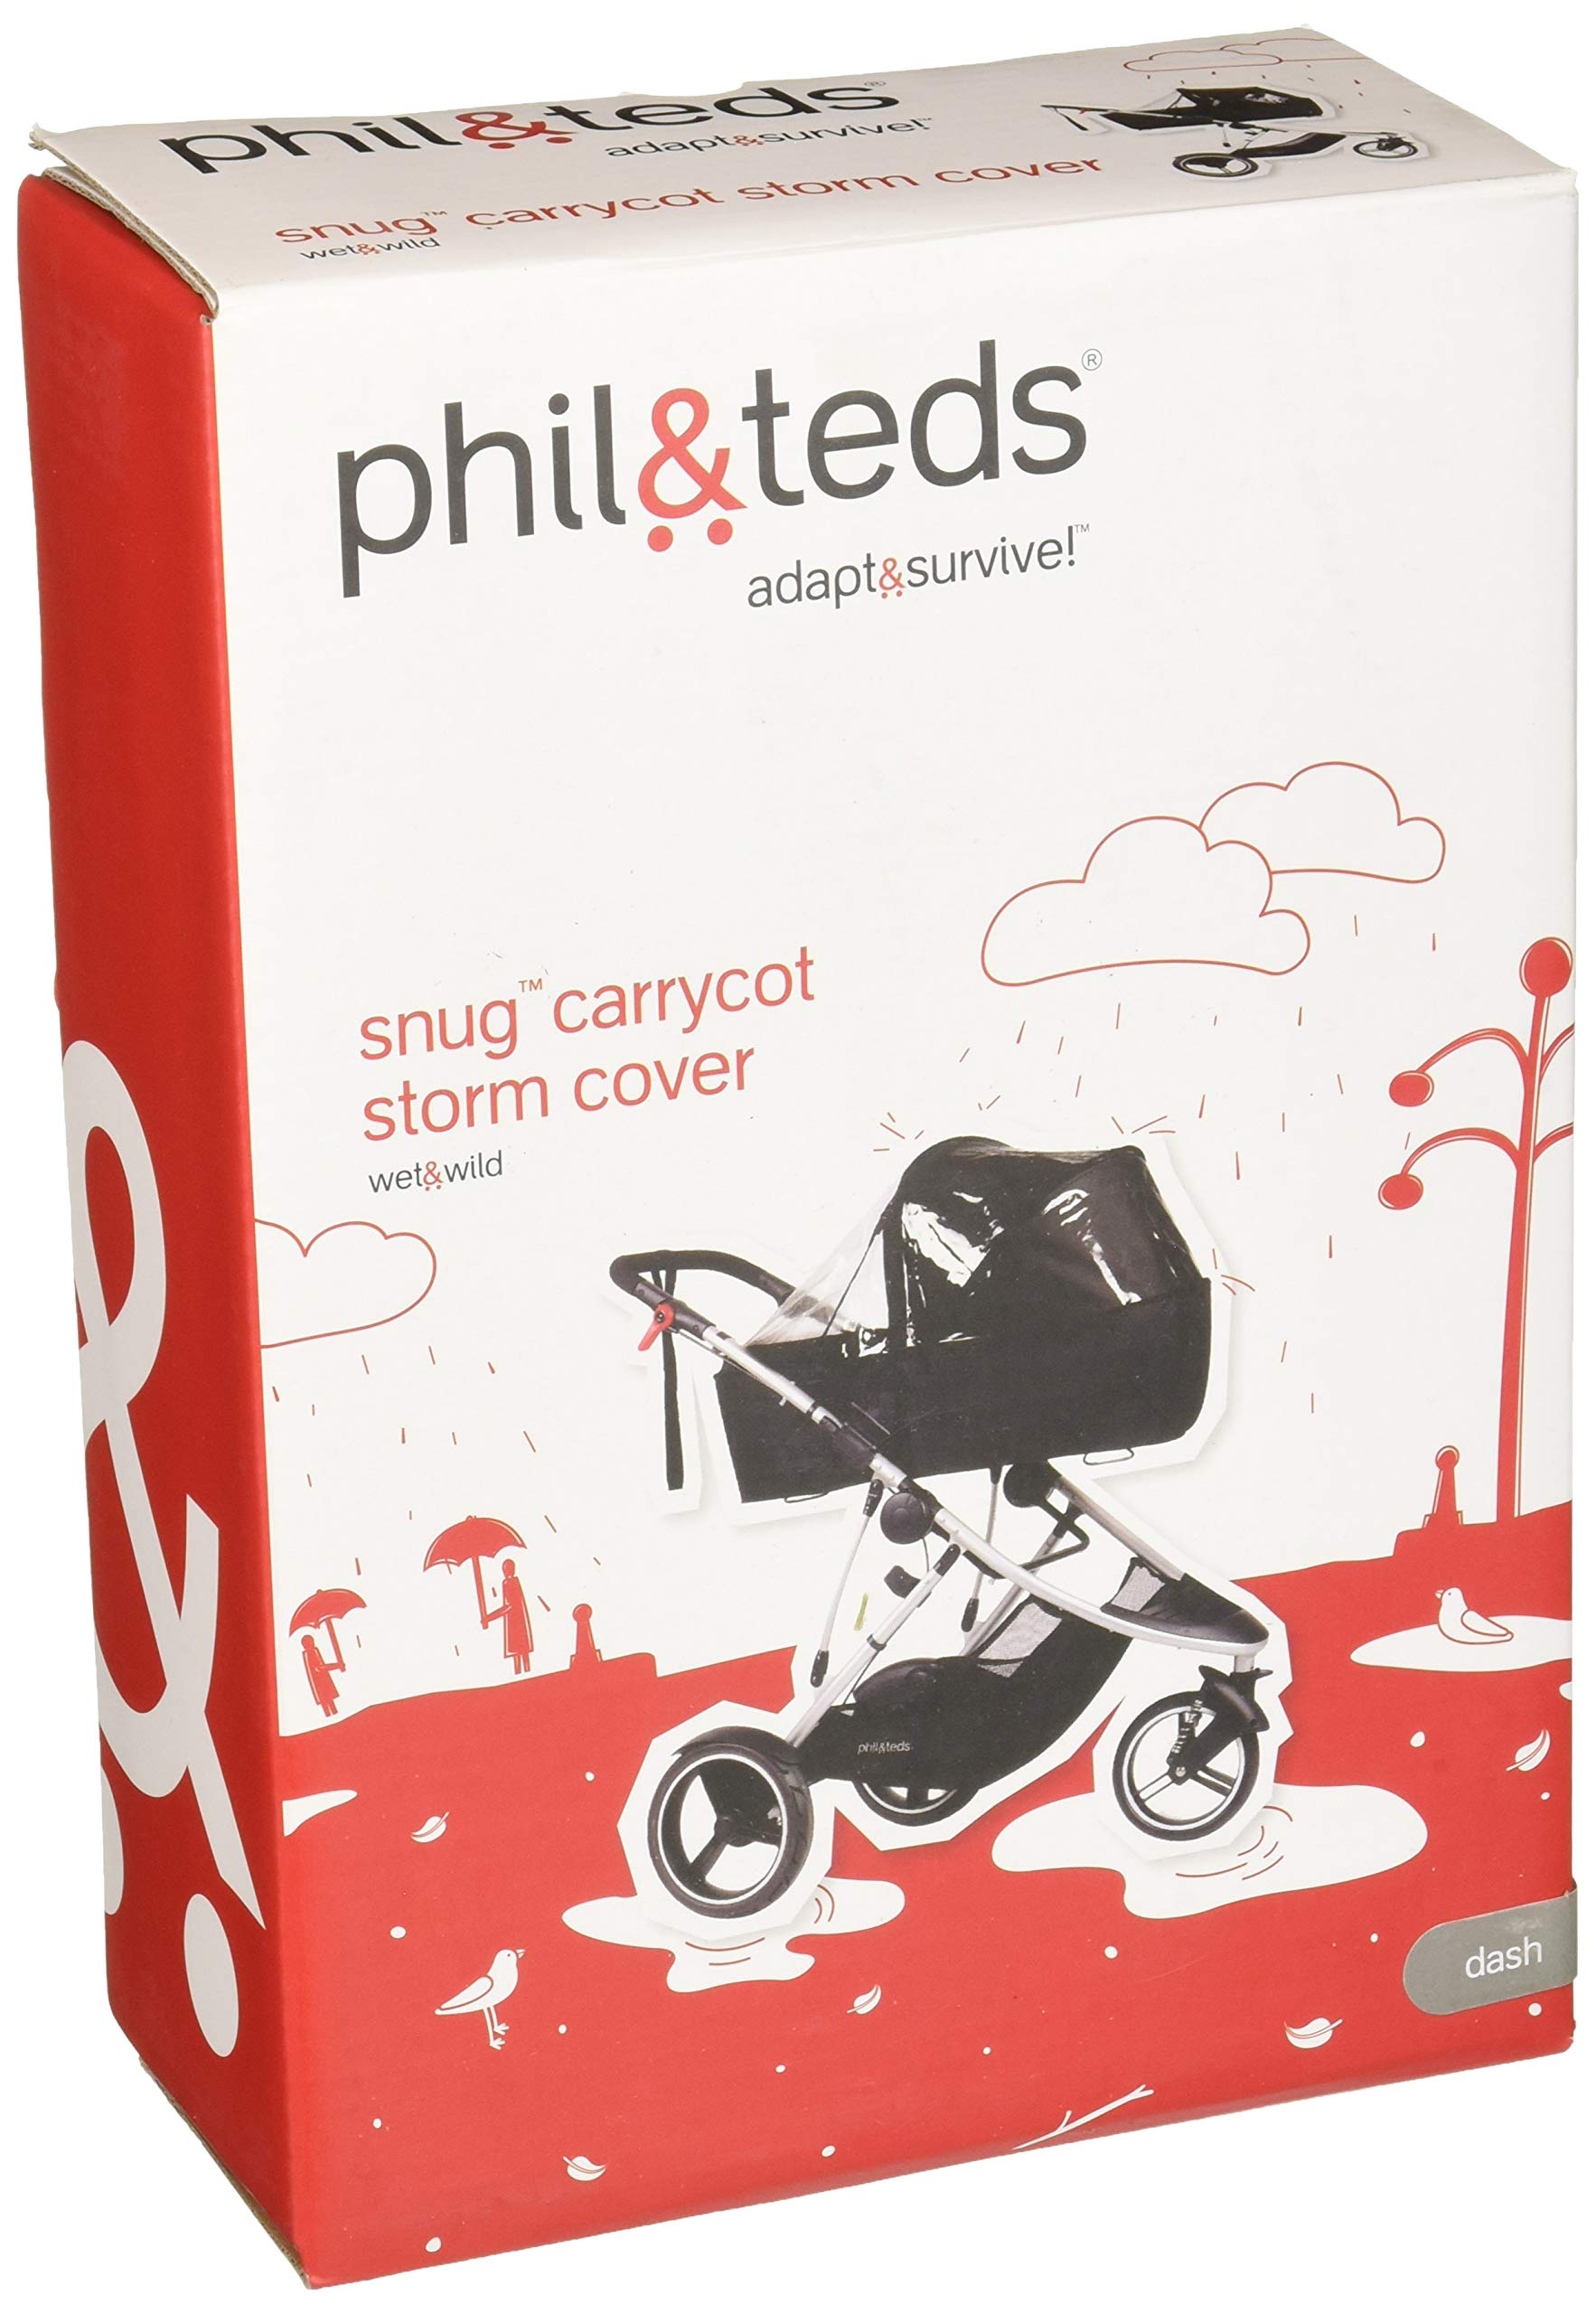 phil&teds Storm Cover for Dash Snug Carrycot by phil&teds (Image #1)